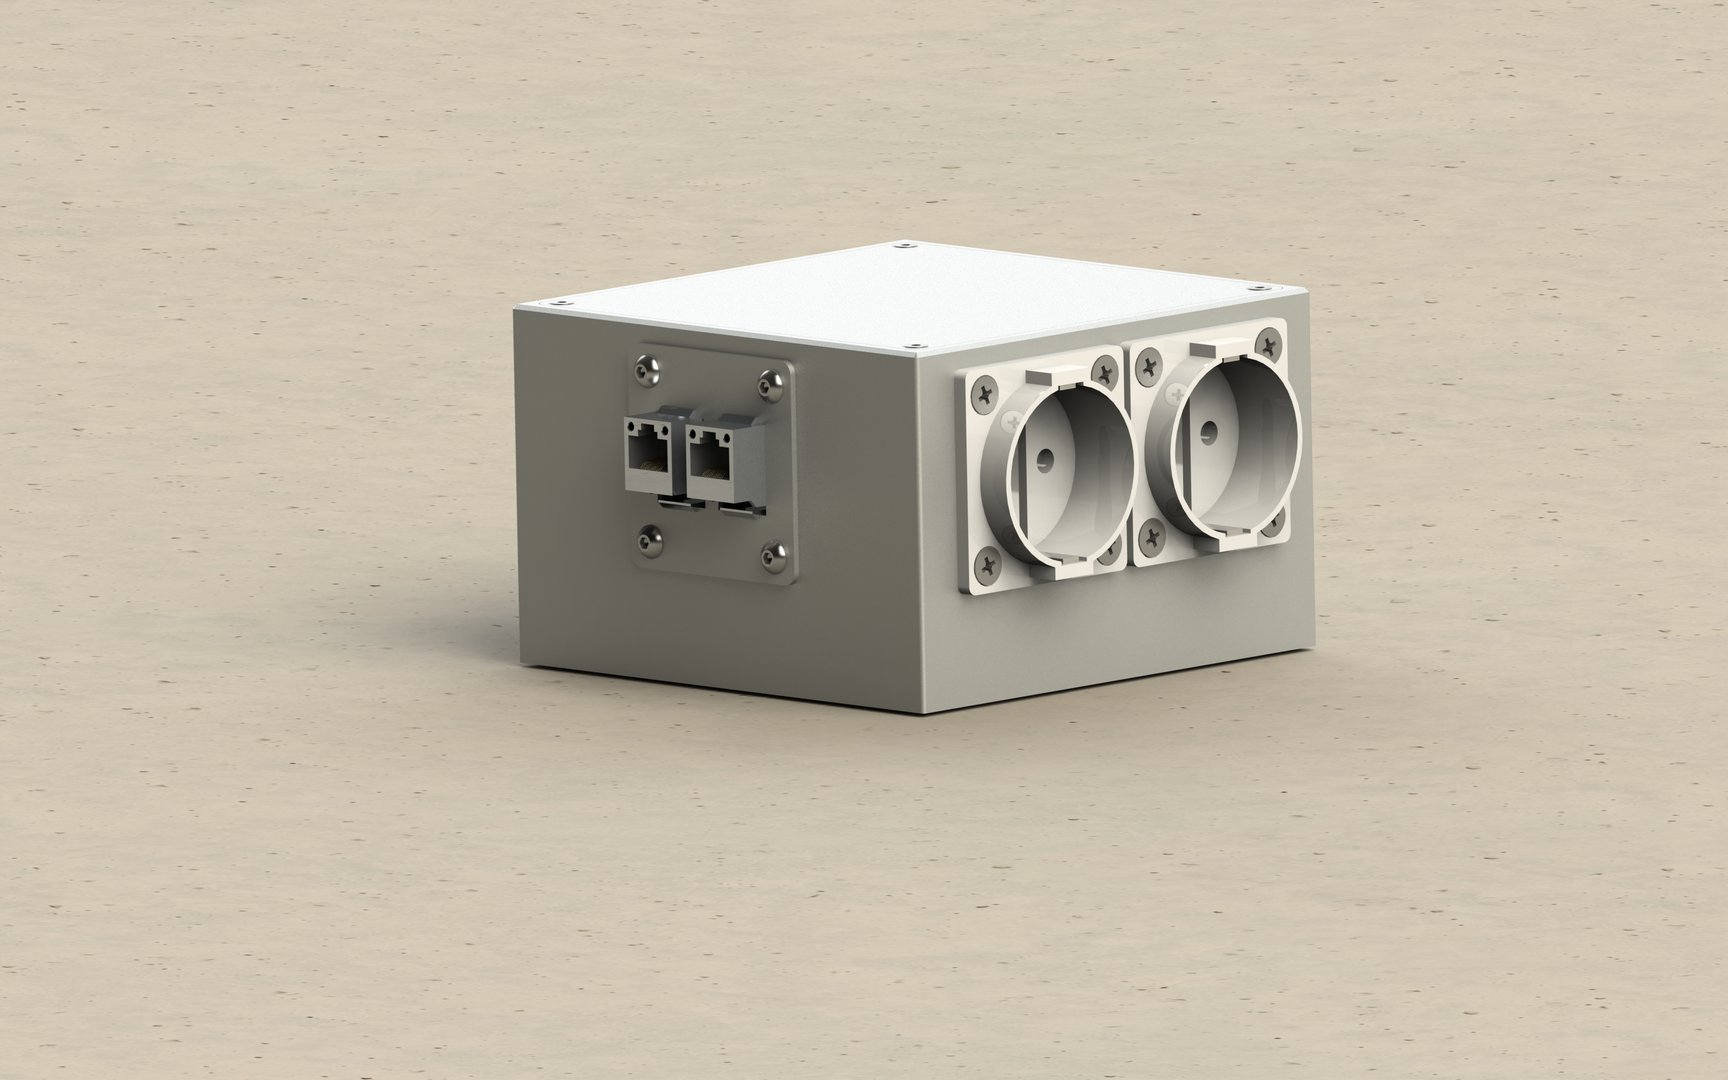 Surface-mounted floor box 6-fold, ideal for retrofitting sockets and other connections (1206)